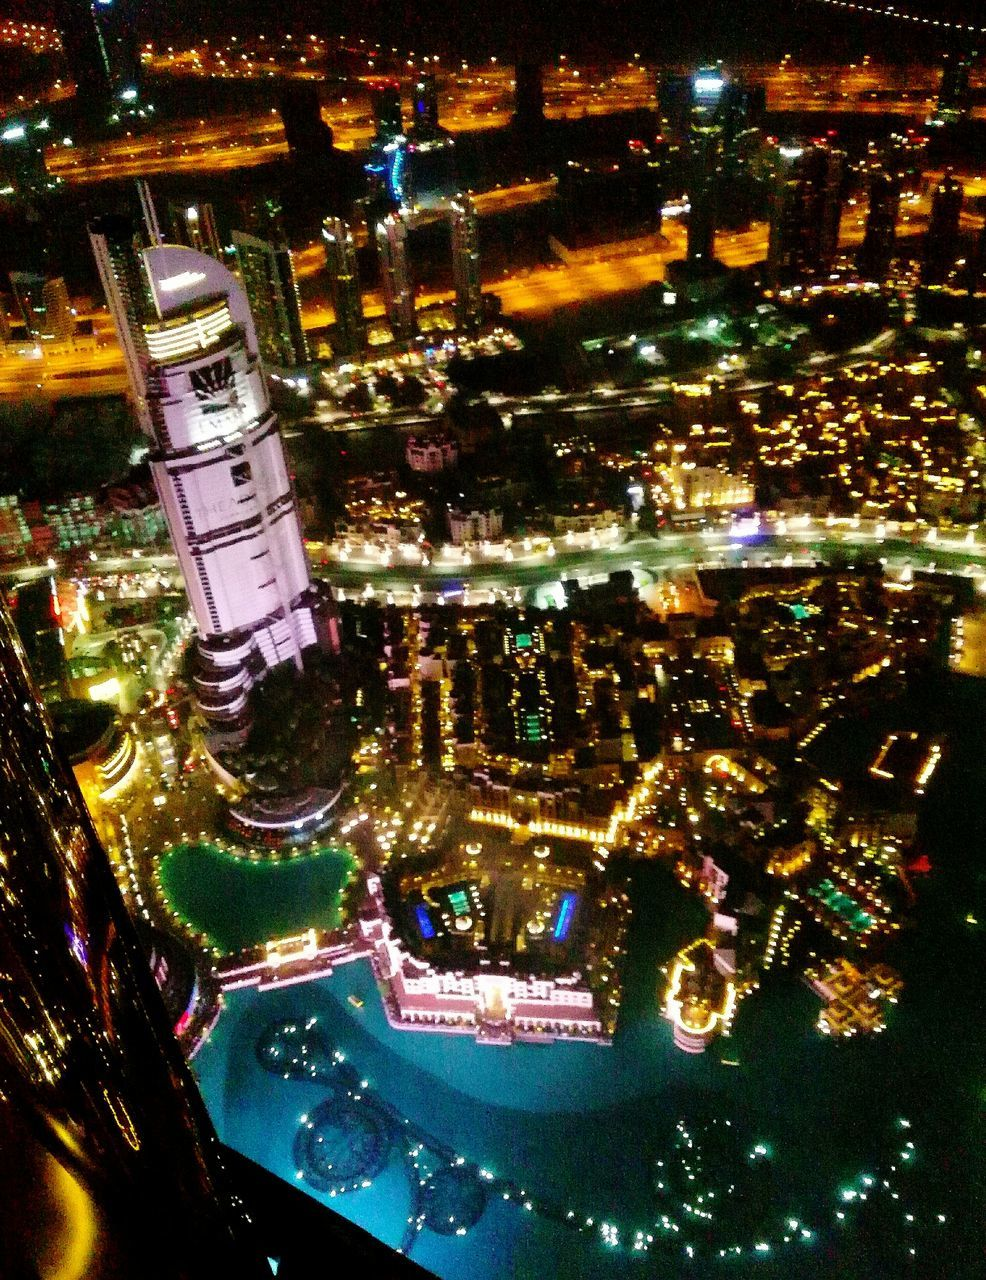 illuminated, night, high angle view, architecture, no people, building exterior, city, indoors, built structure, cityscape, water, close-up